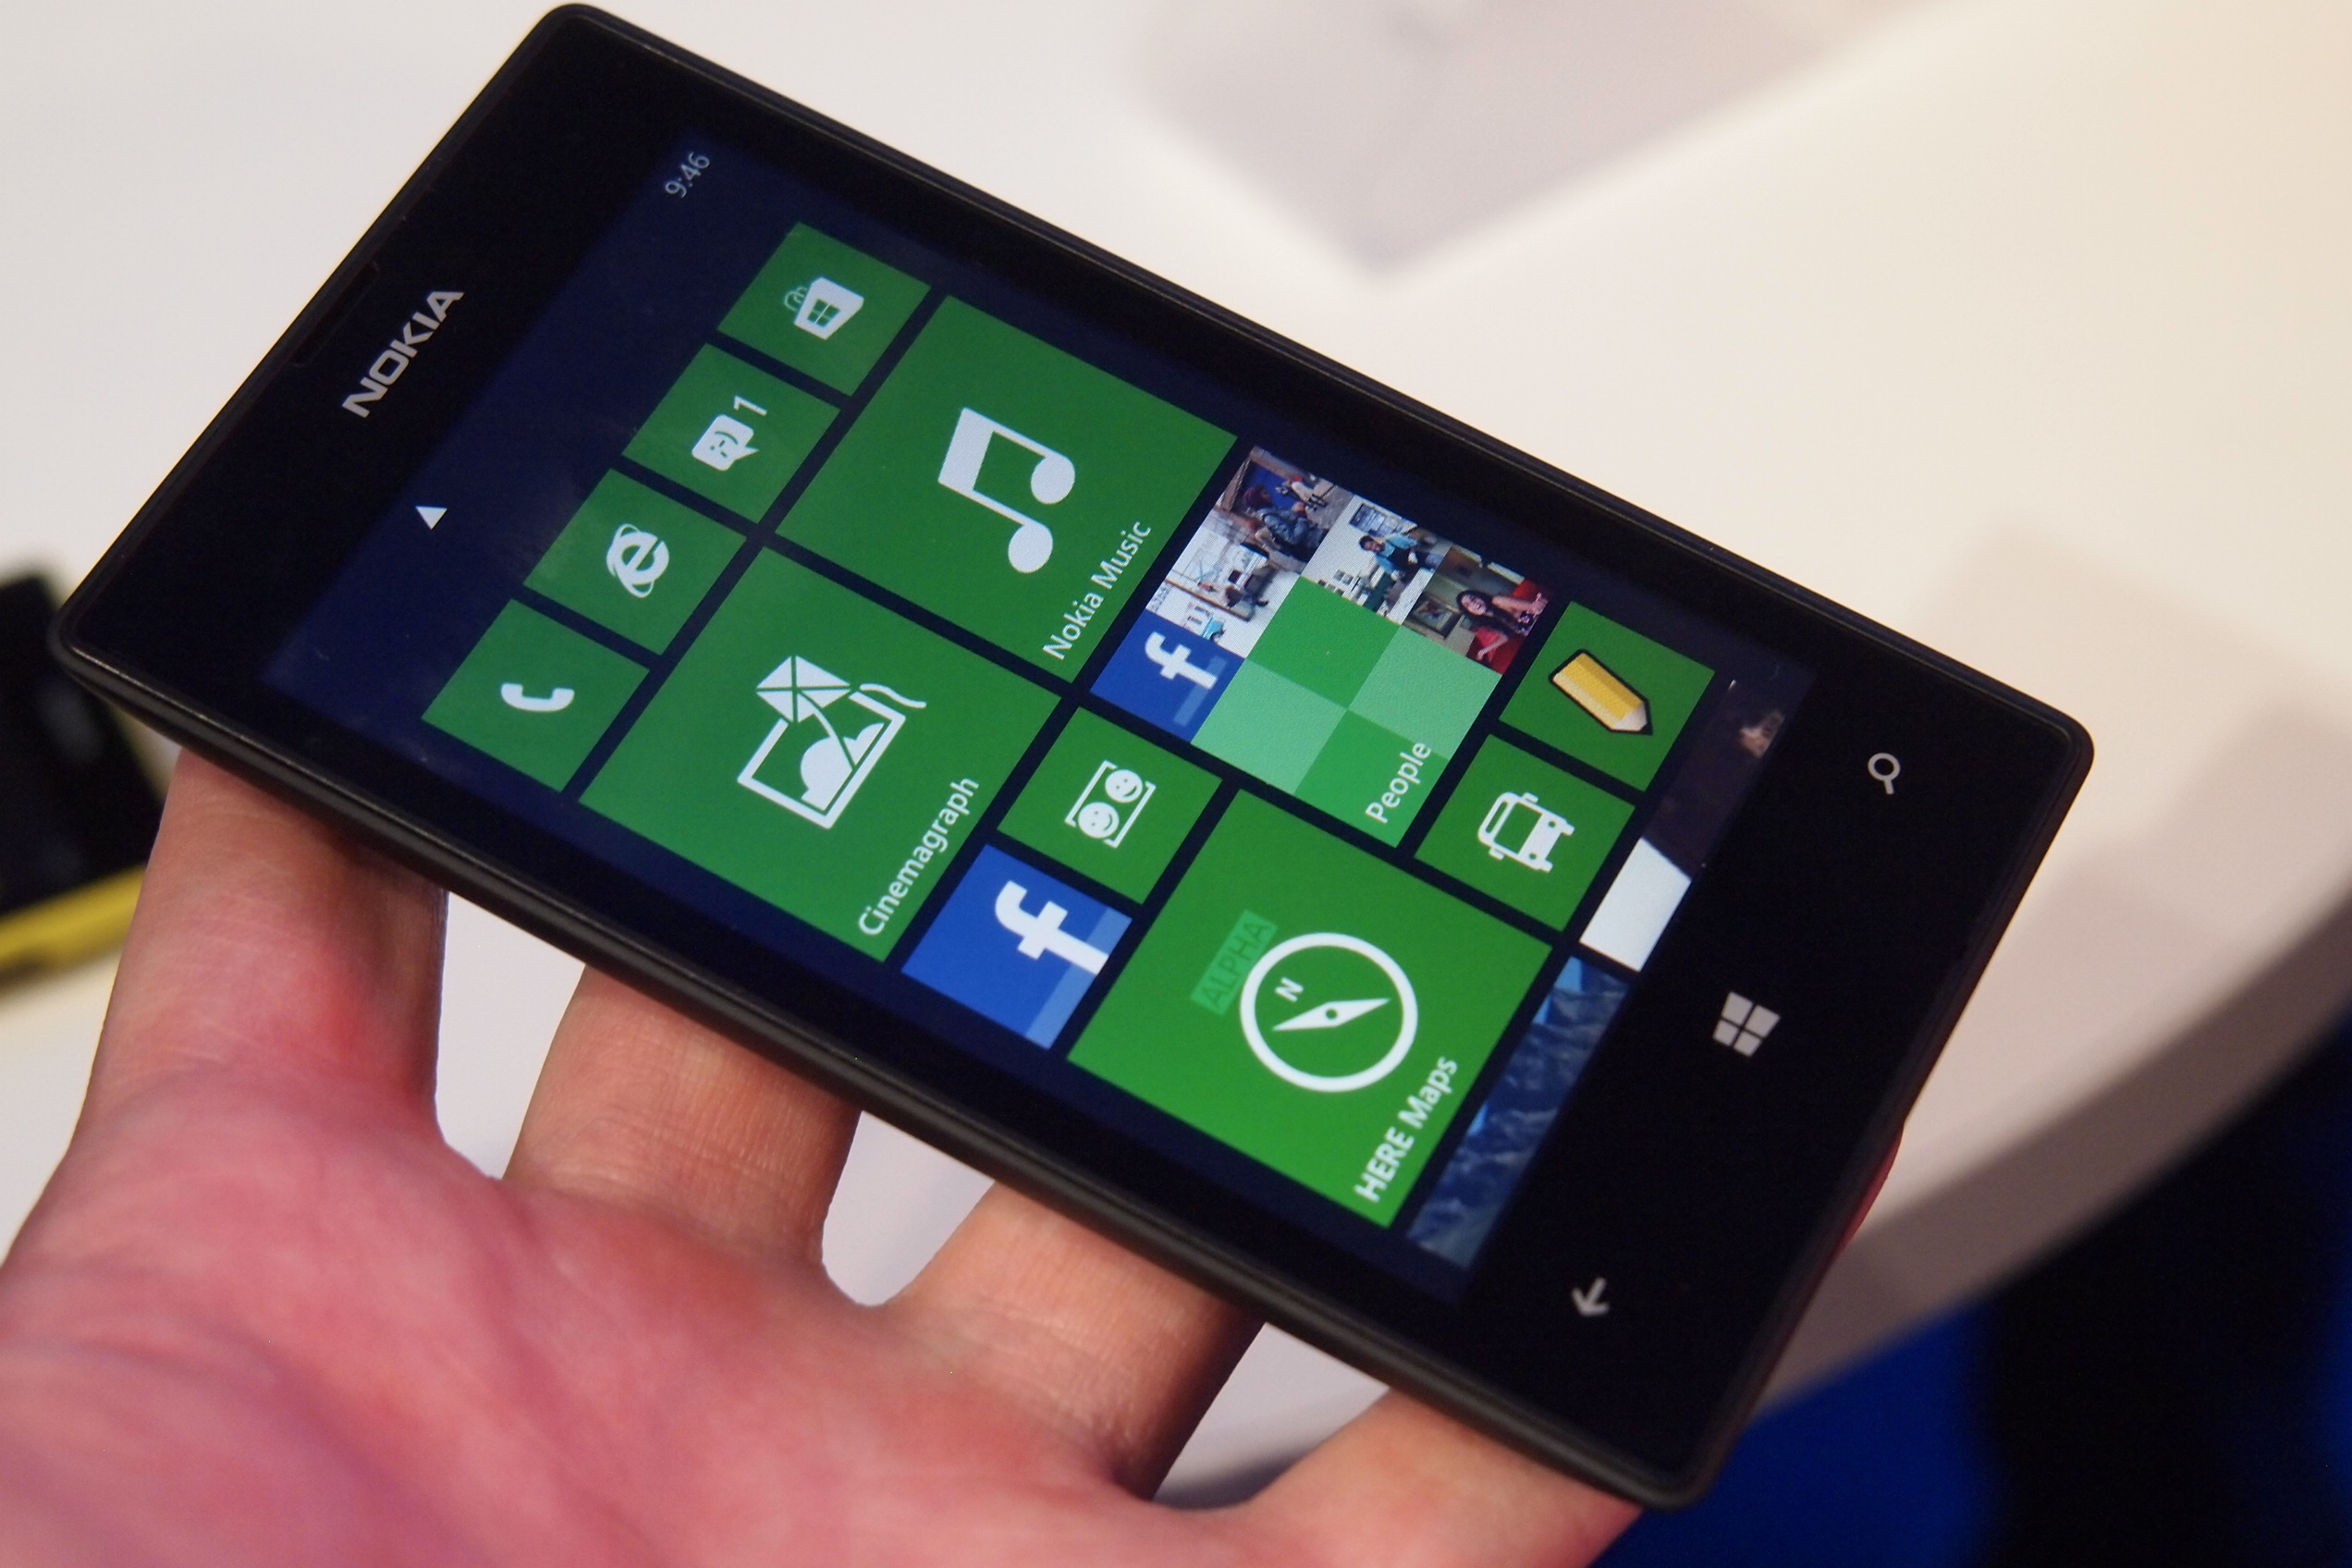 Windows Phone data recovery software to recover